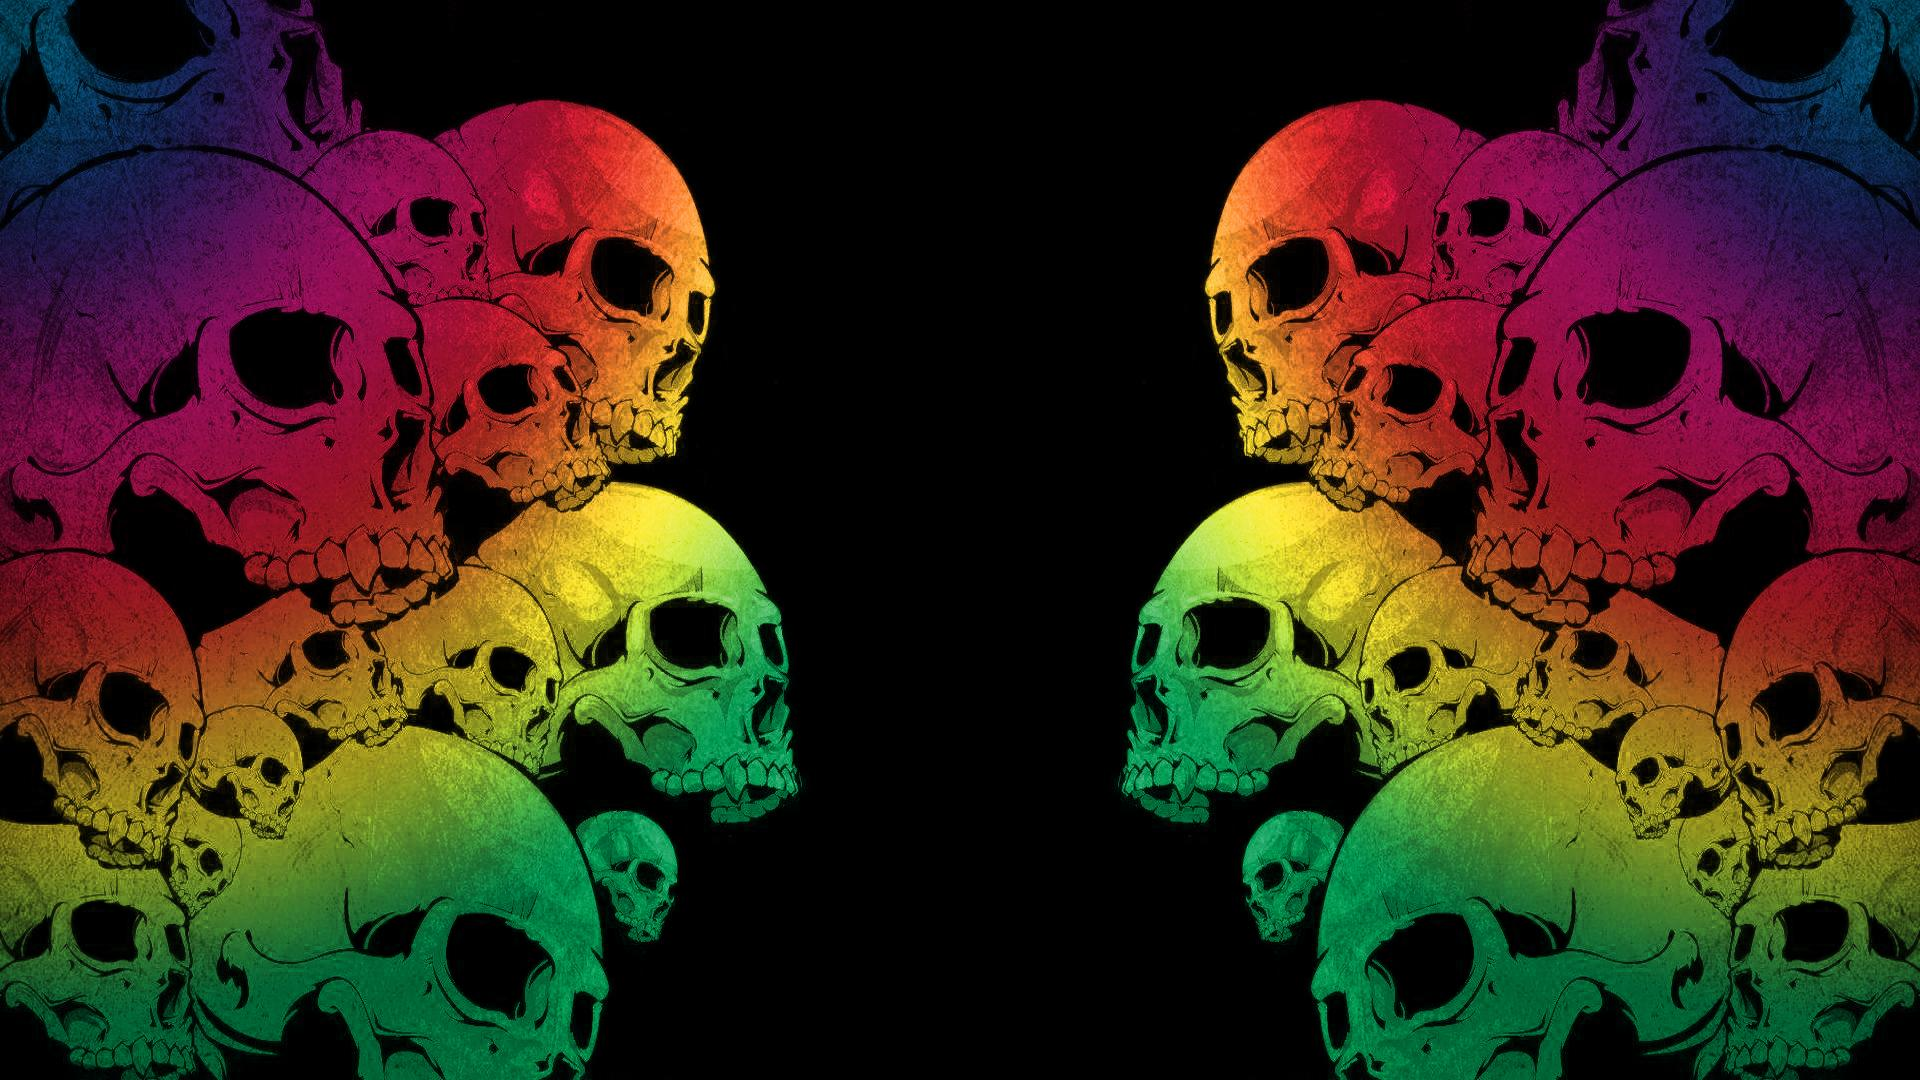 Colorful Skull Wallpapers, FHDQ Picture